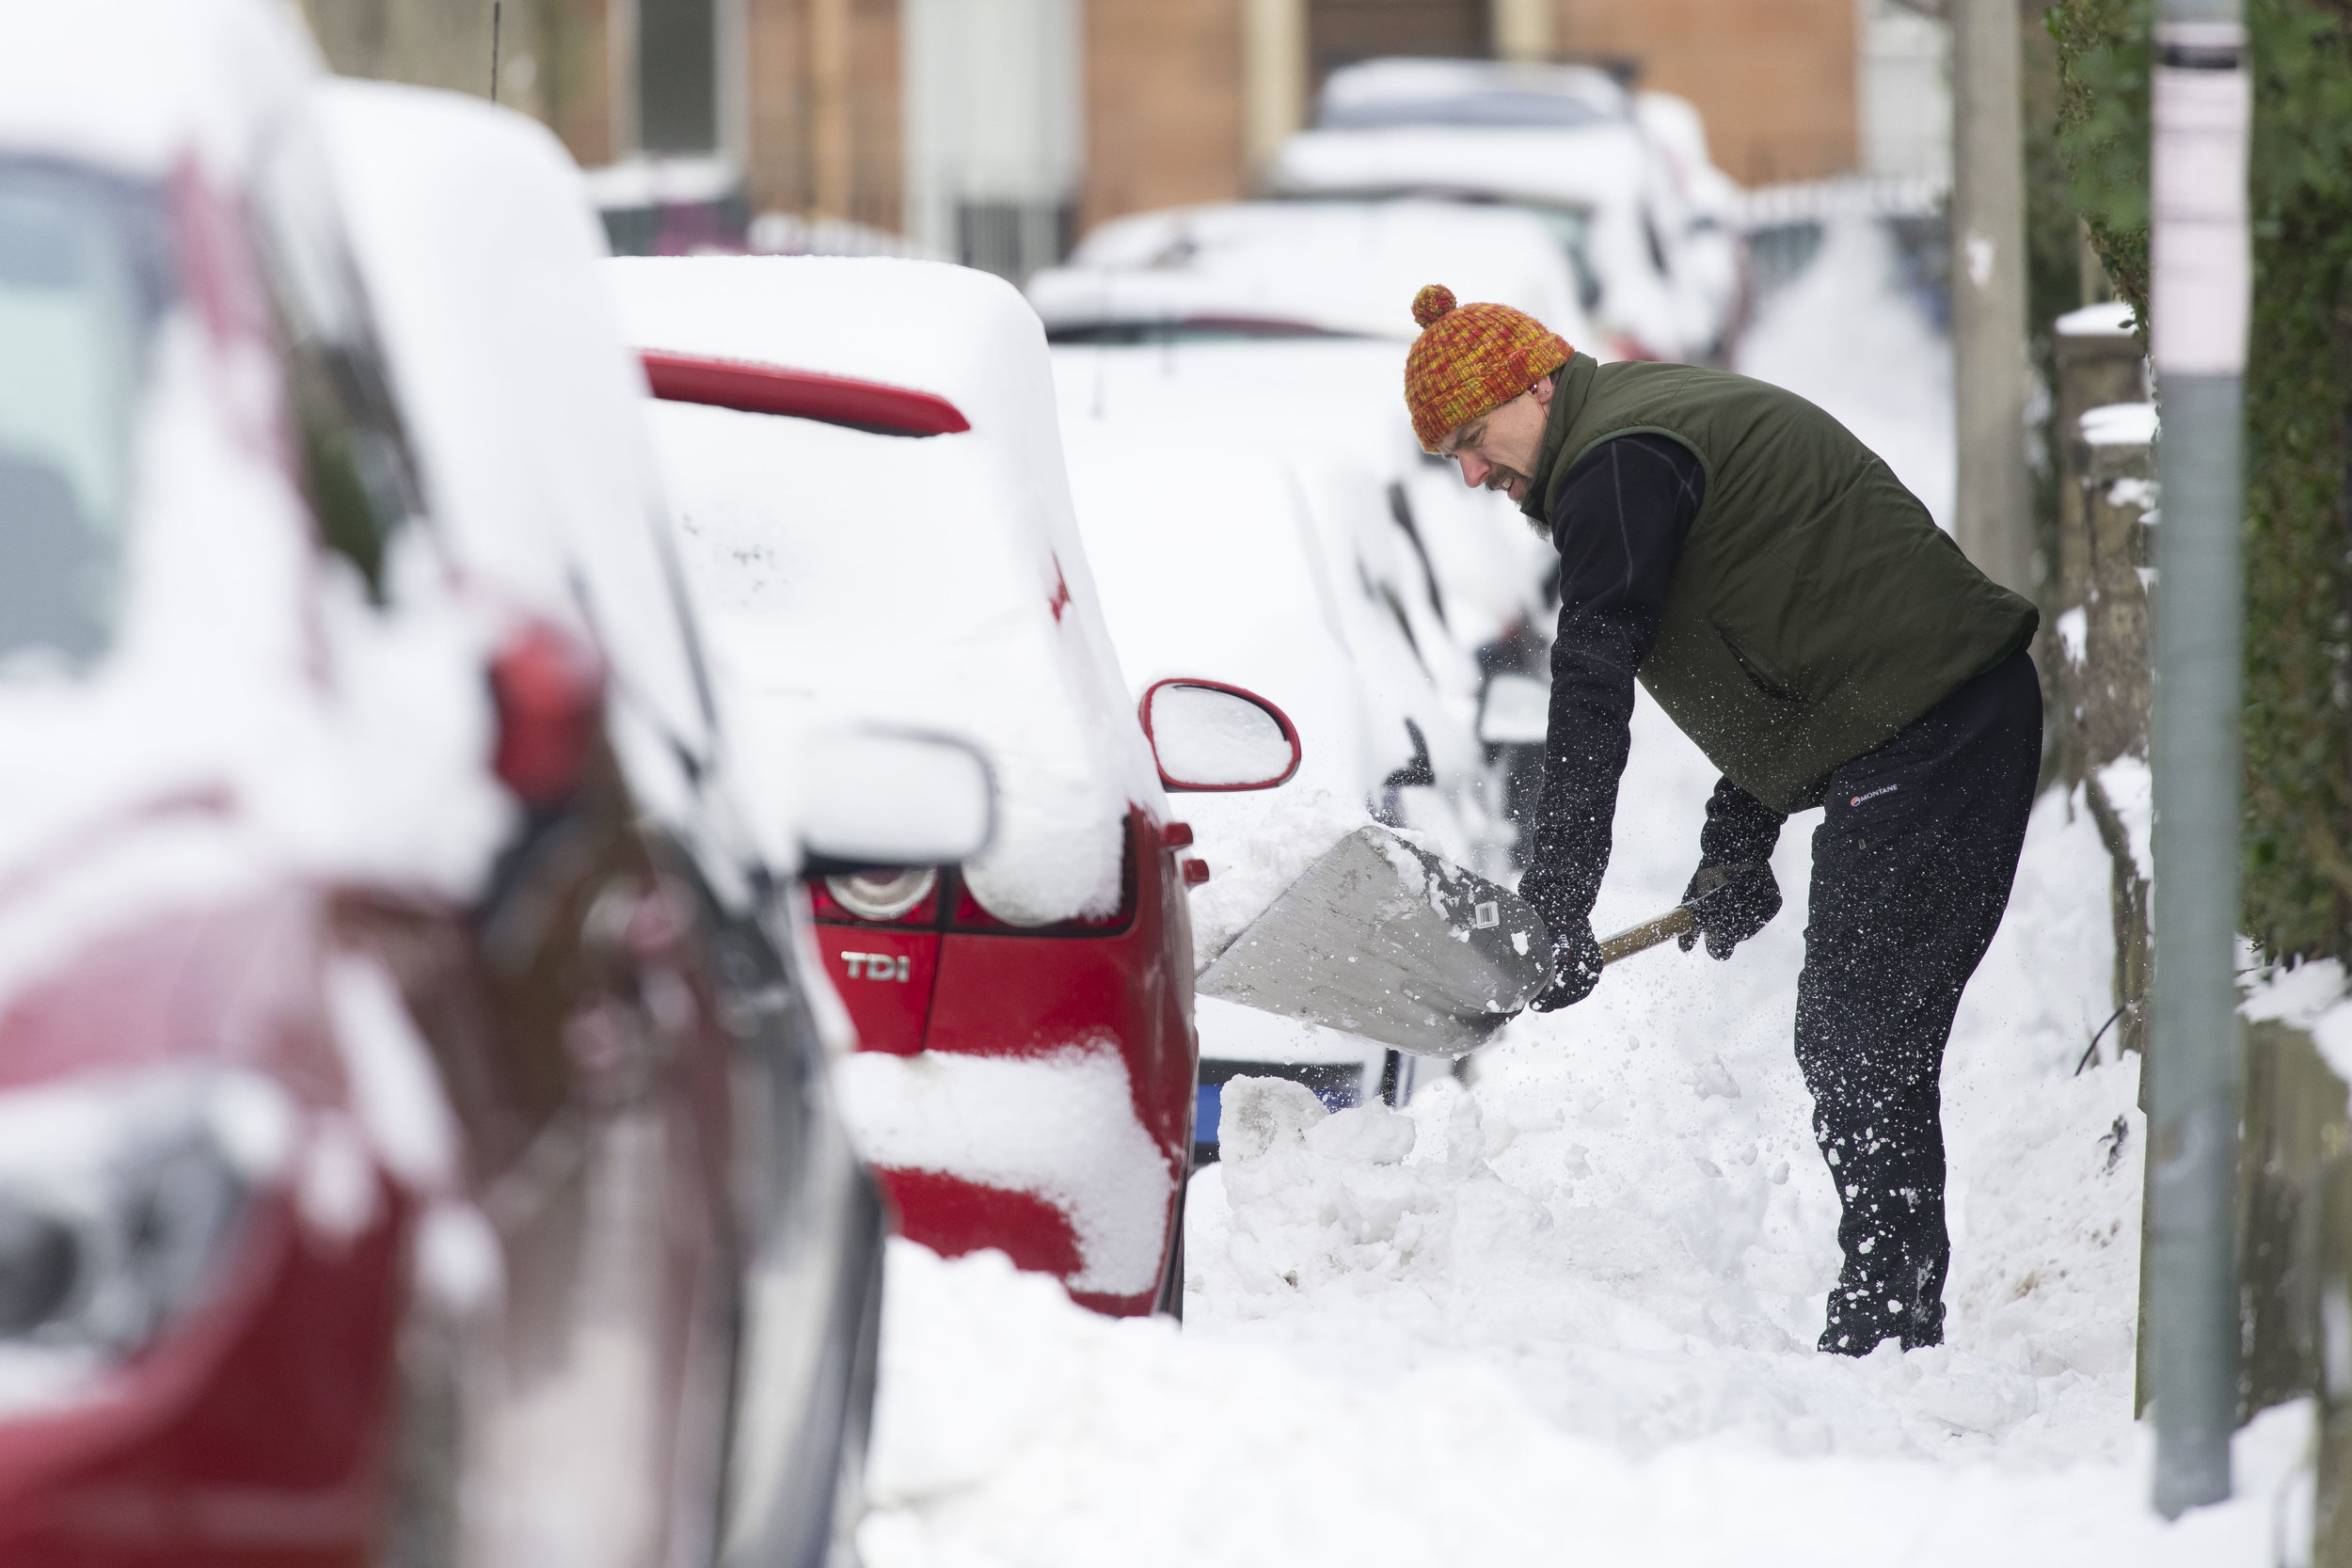 EDINBURGH, SCOTLAND - MARCH 1: A man clears snow from the pavement on March 1, 2018 in the Abbeyhill area of Edinburgh, United Kingdom. People have been warned not to make unnecessary journeys as the Met office issues a red weather be aware warning for parts of Wales and South West England following the one currently in place in Scotland. (Photo by Matthew Horwood/Getty Images)